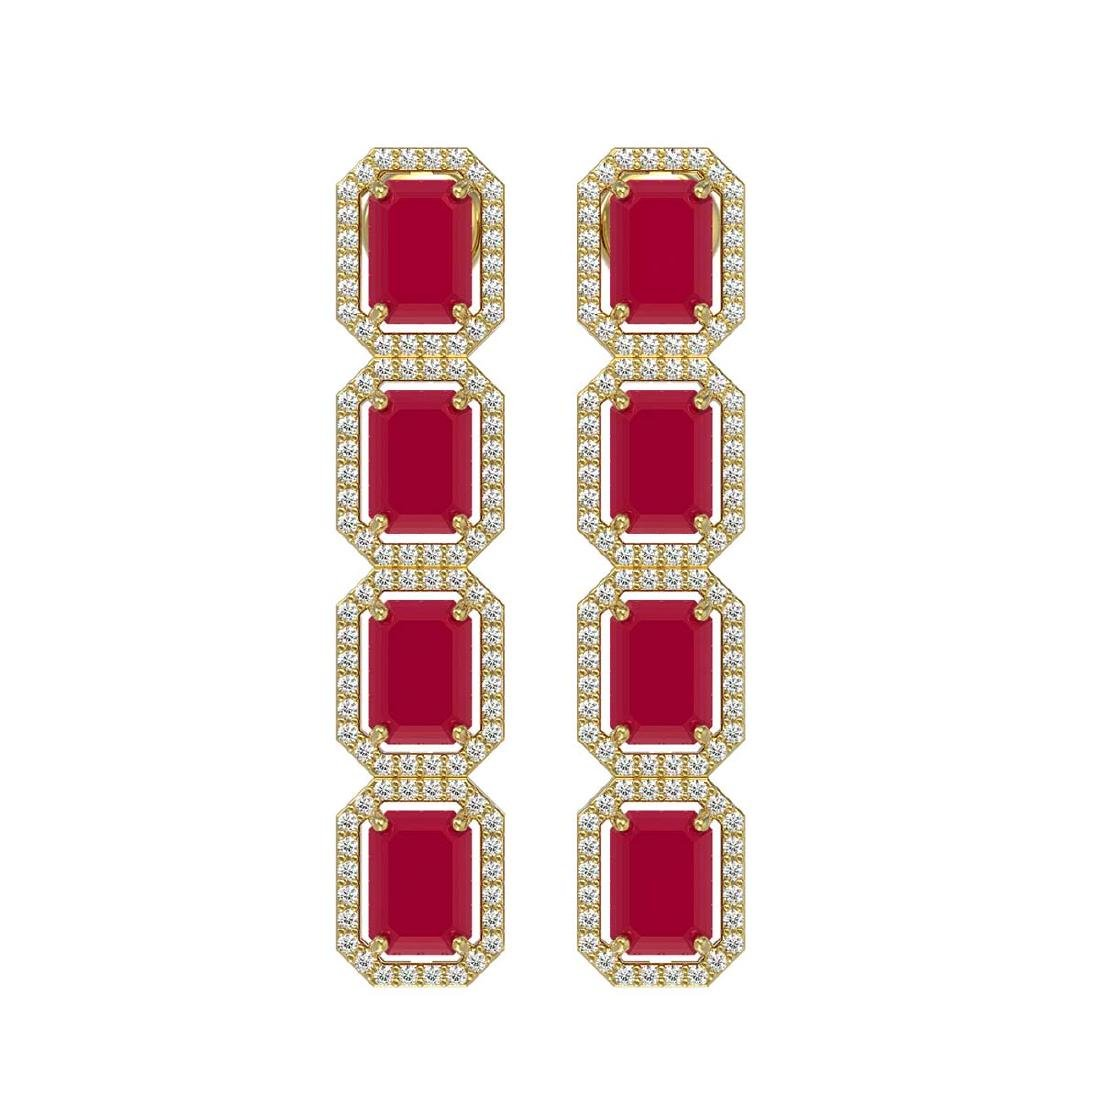 12.33 CTW Ruby & Diamond Halo Earrings 10K Yellow Gold